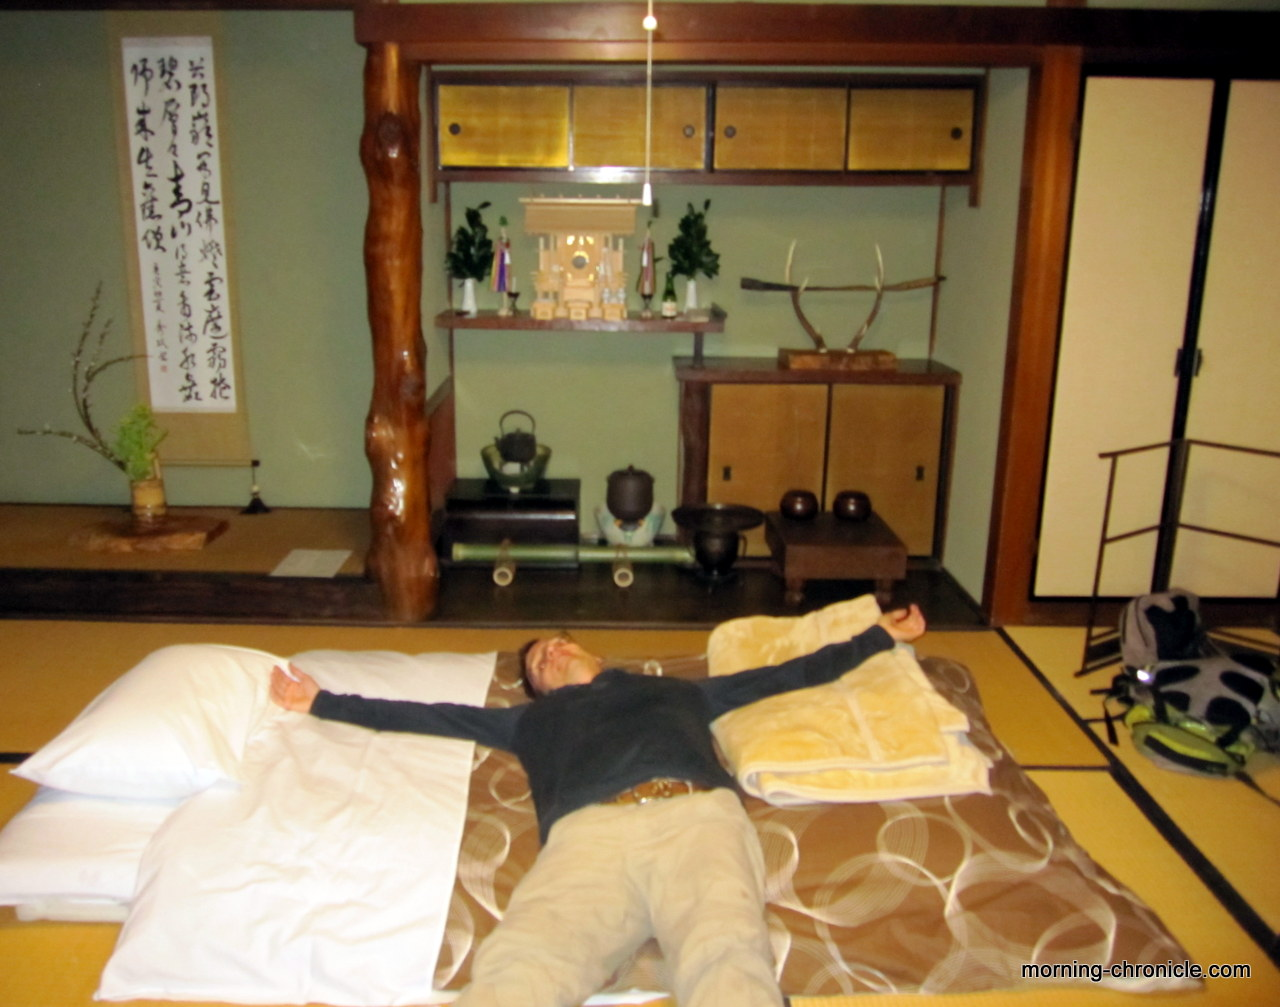 Chambre Japon Nara Avec Miho Morning Chronicle